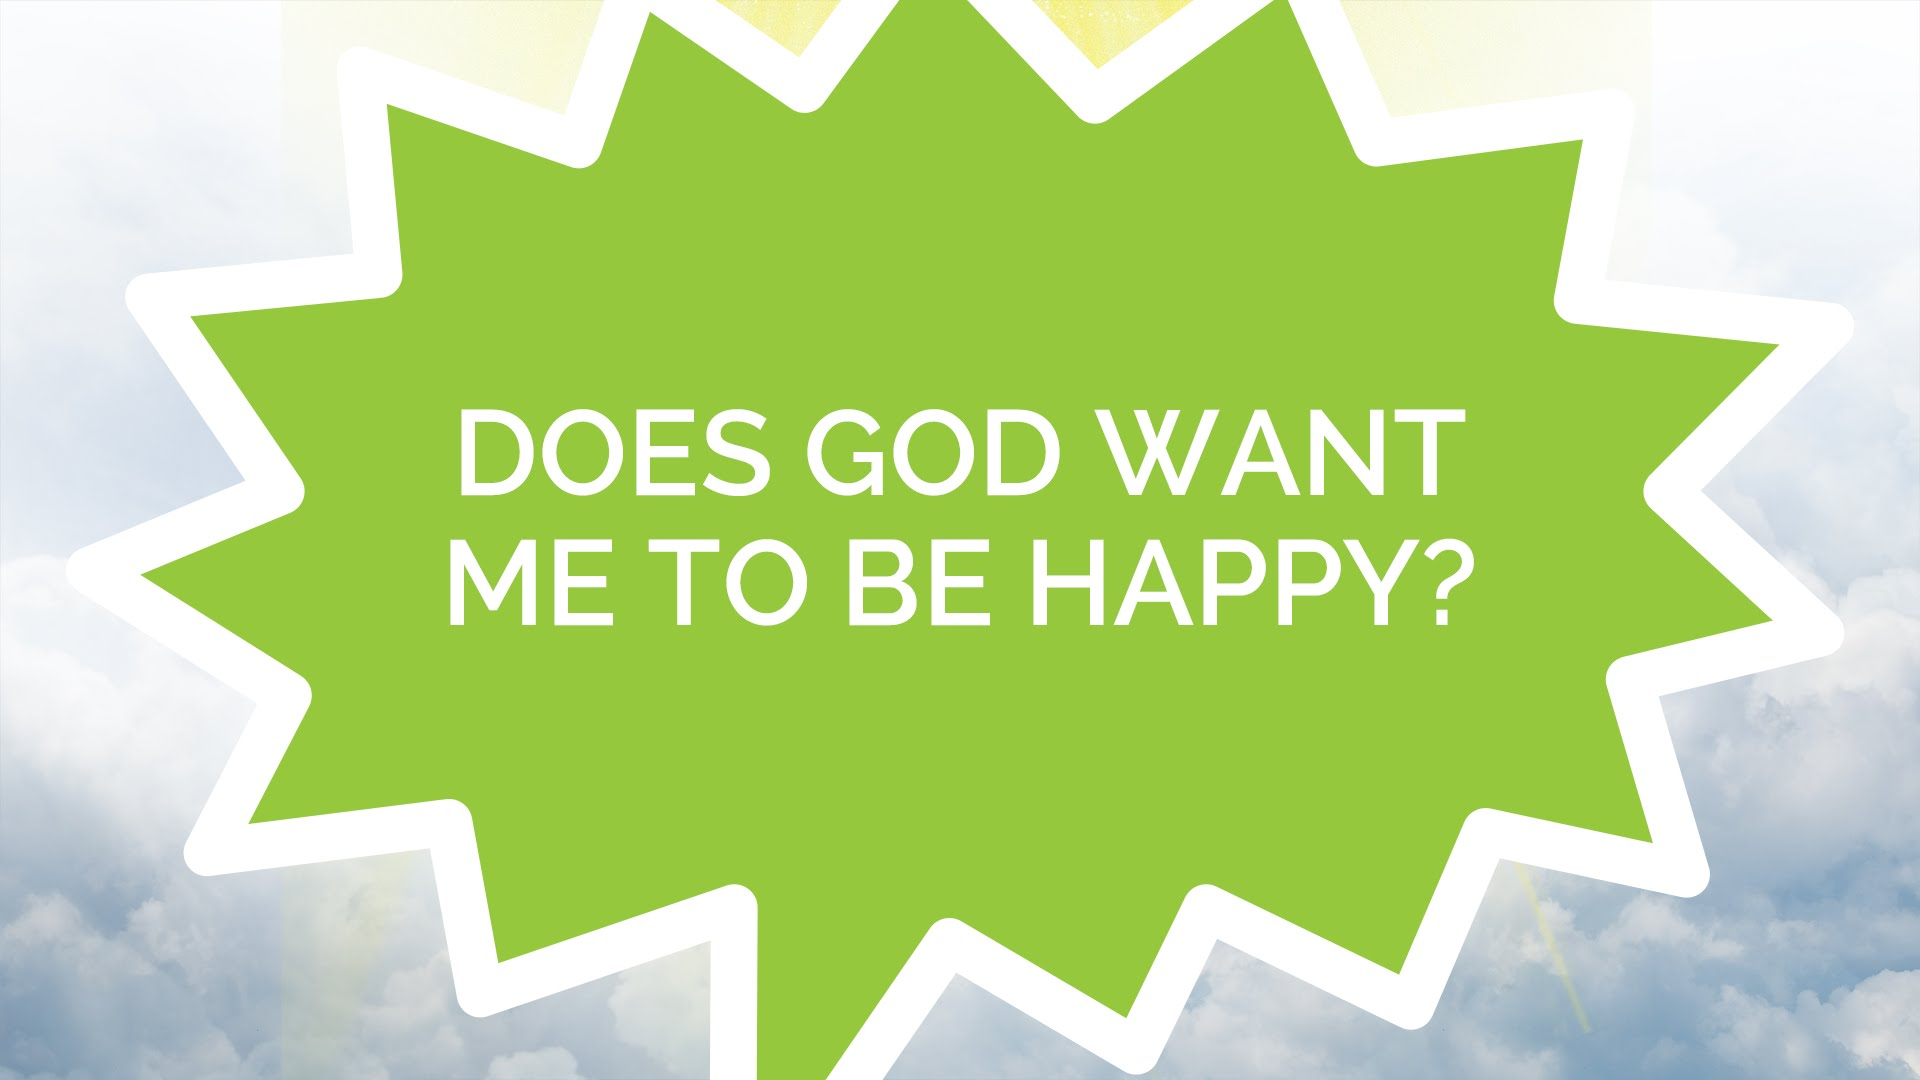 Does God Want Me to Be Happy?